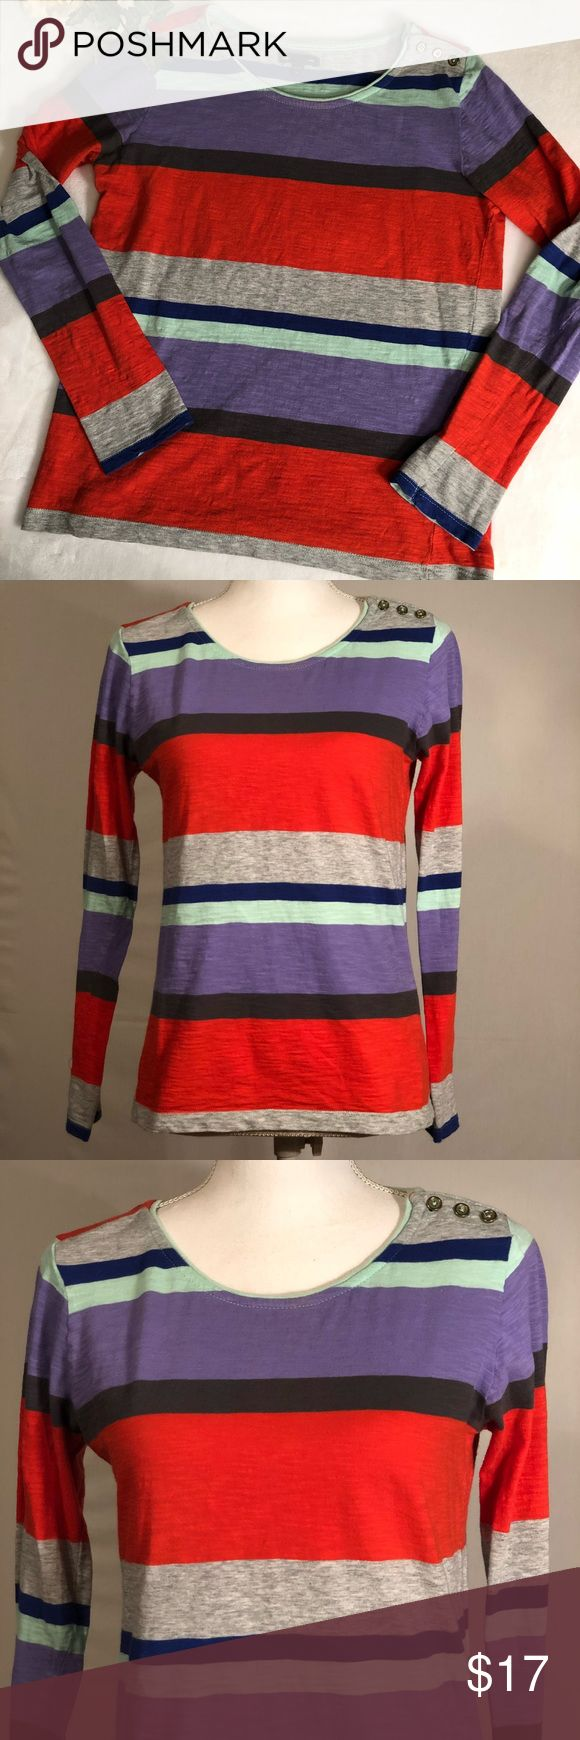 "Gap Colorful Graphic Stripe Button Tee Gap Colorful Graphic Stripe Button Tee. Colorful, graphic stripes. Gray, blue, aqua, purple, and coral. Round neckline with cut gold tone button detail on left shoulder. Long sleeves. Stretchy cotton knit material. Size medium. EUC, excellent used condition. No flaws. Measurements taken laid flat. 15"" shoulder width, 18"" bust, 24"" length. GAP Tops Blouses"